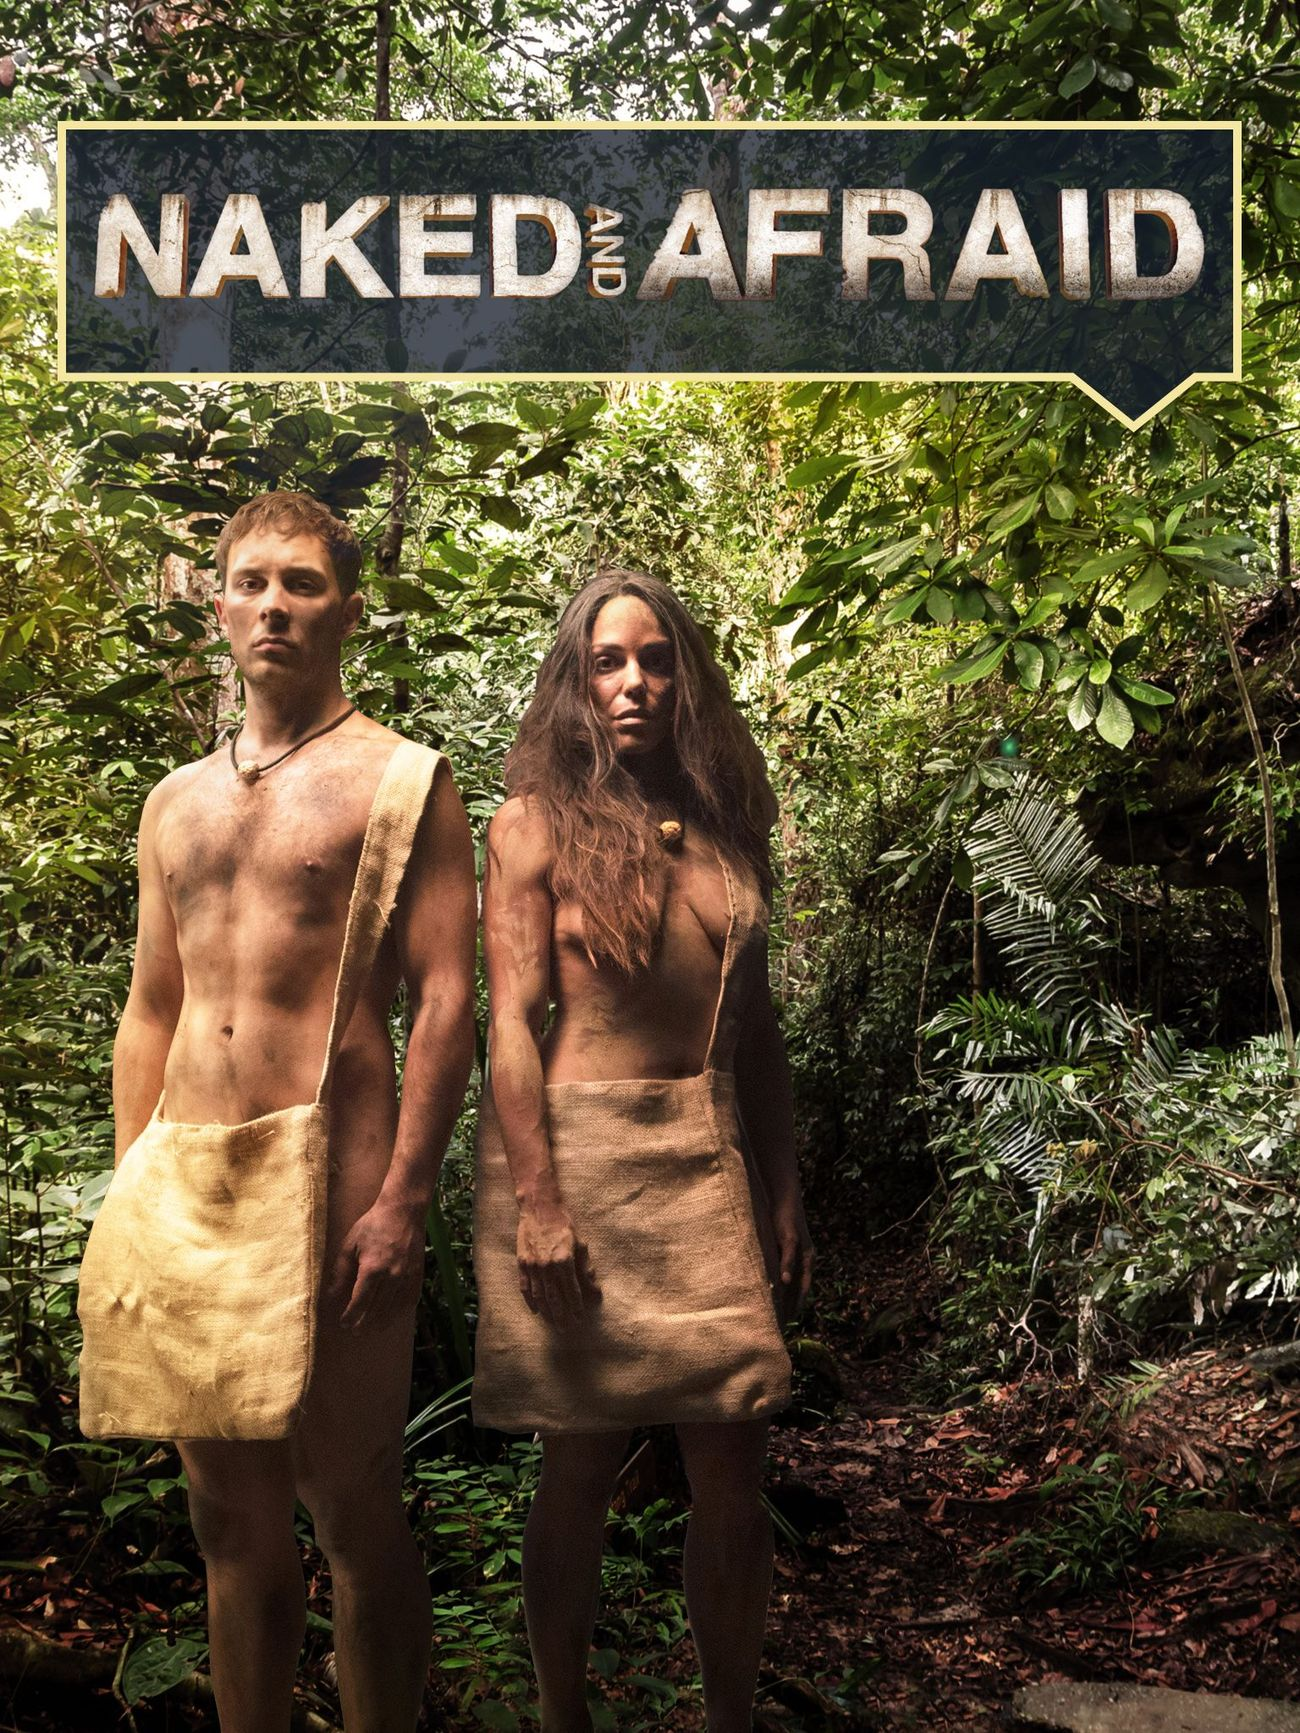 Naked and Afraid Prize Money: Is the money worth the risk?